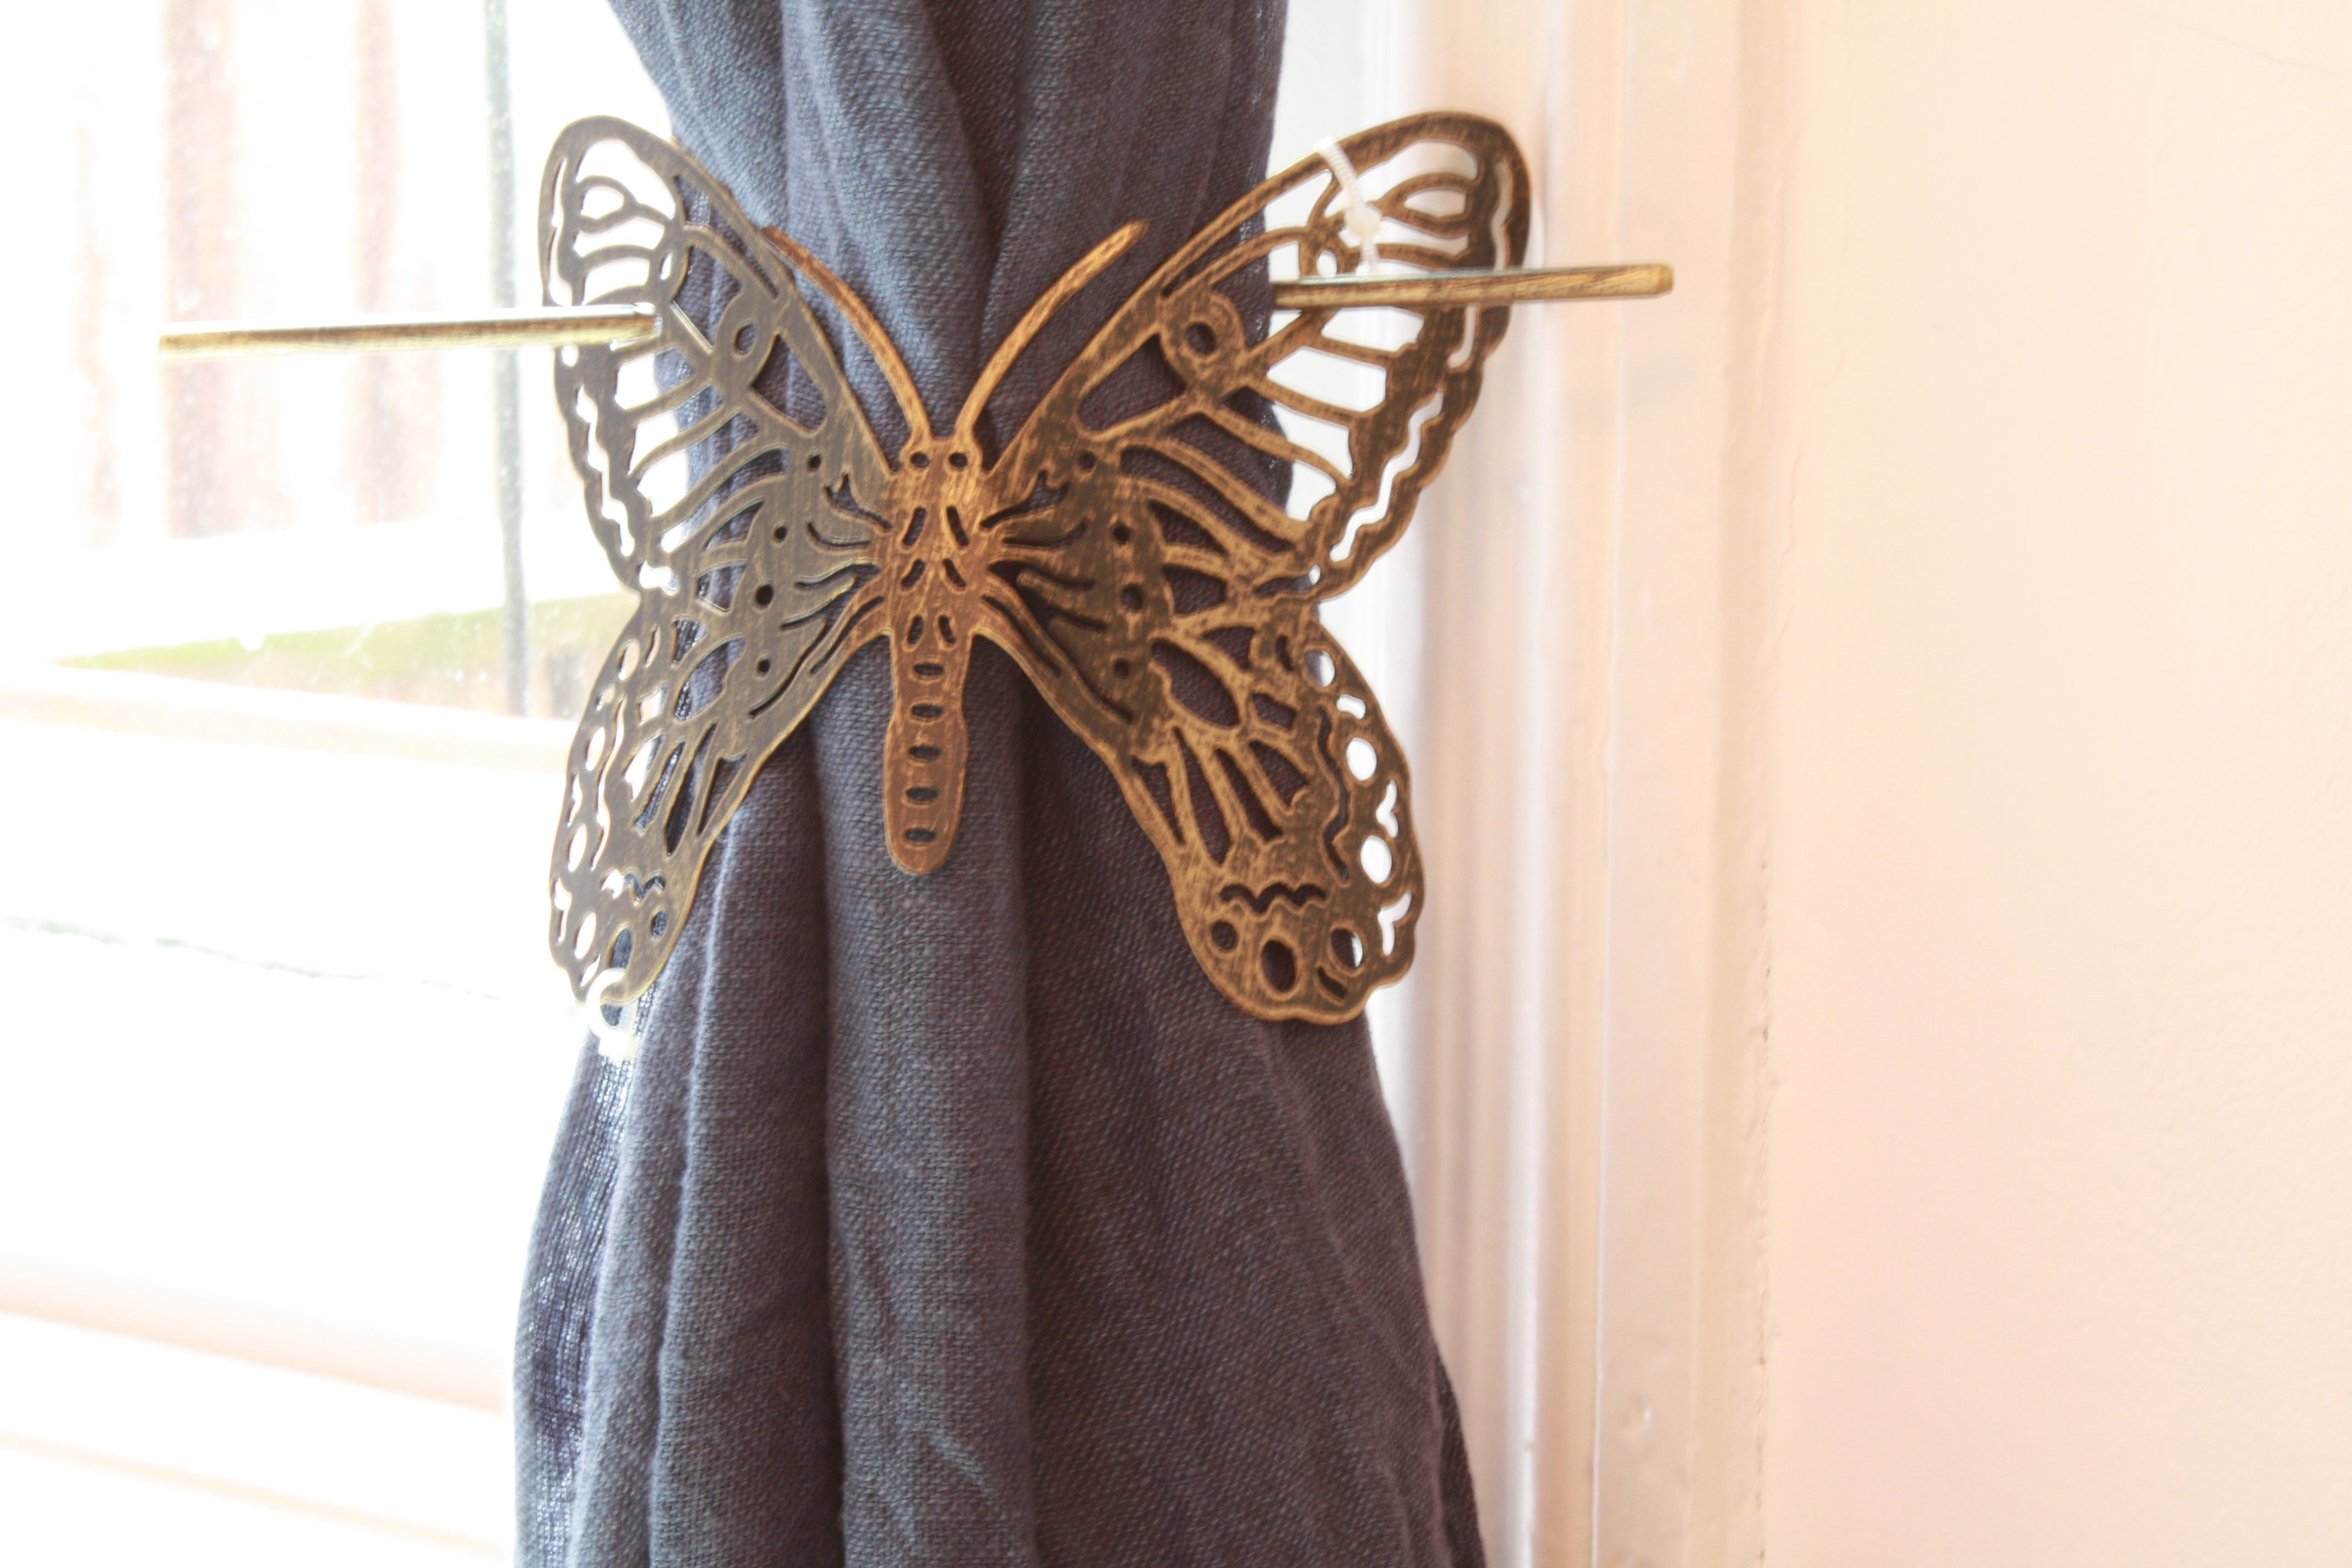 1x Brushed Silver Black Butterfly Design Metal Curtain Tie Back